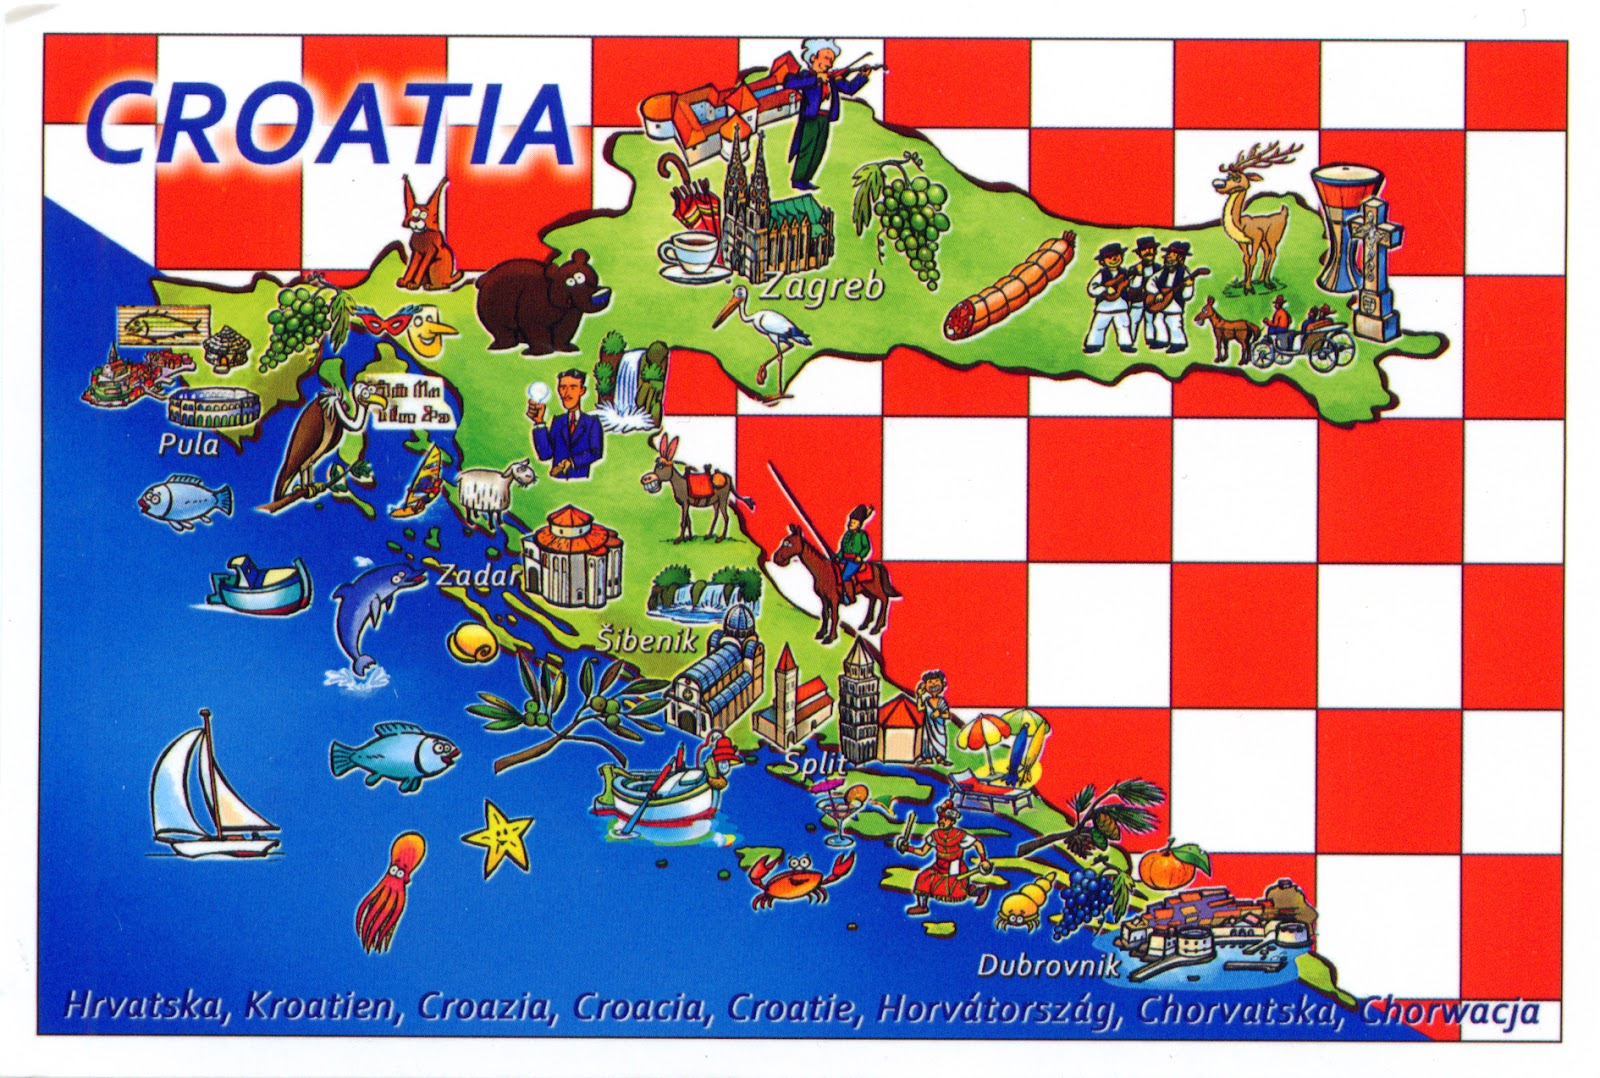 World come to my home 0118 1227 croatia the map and the flag 0118 1227 croatia the map and the flag of the country gumiabroncs Images